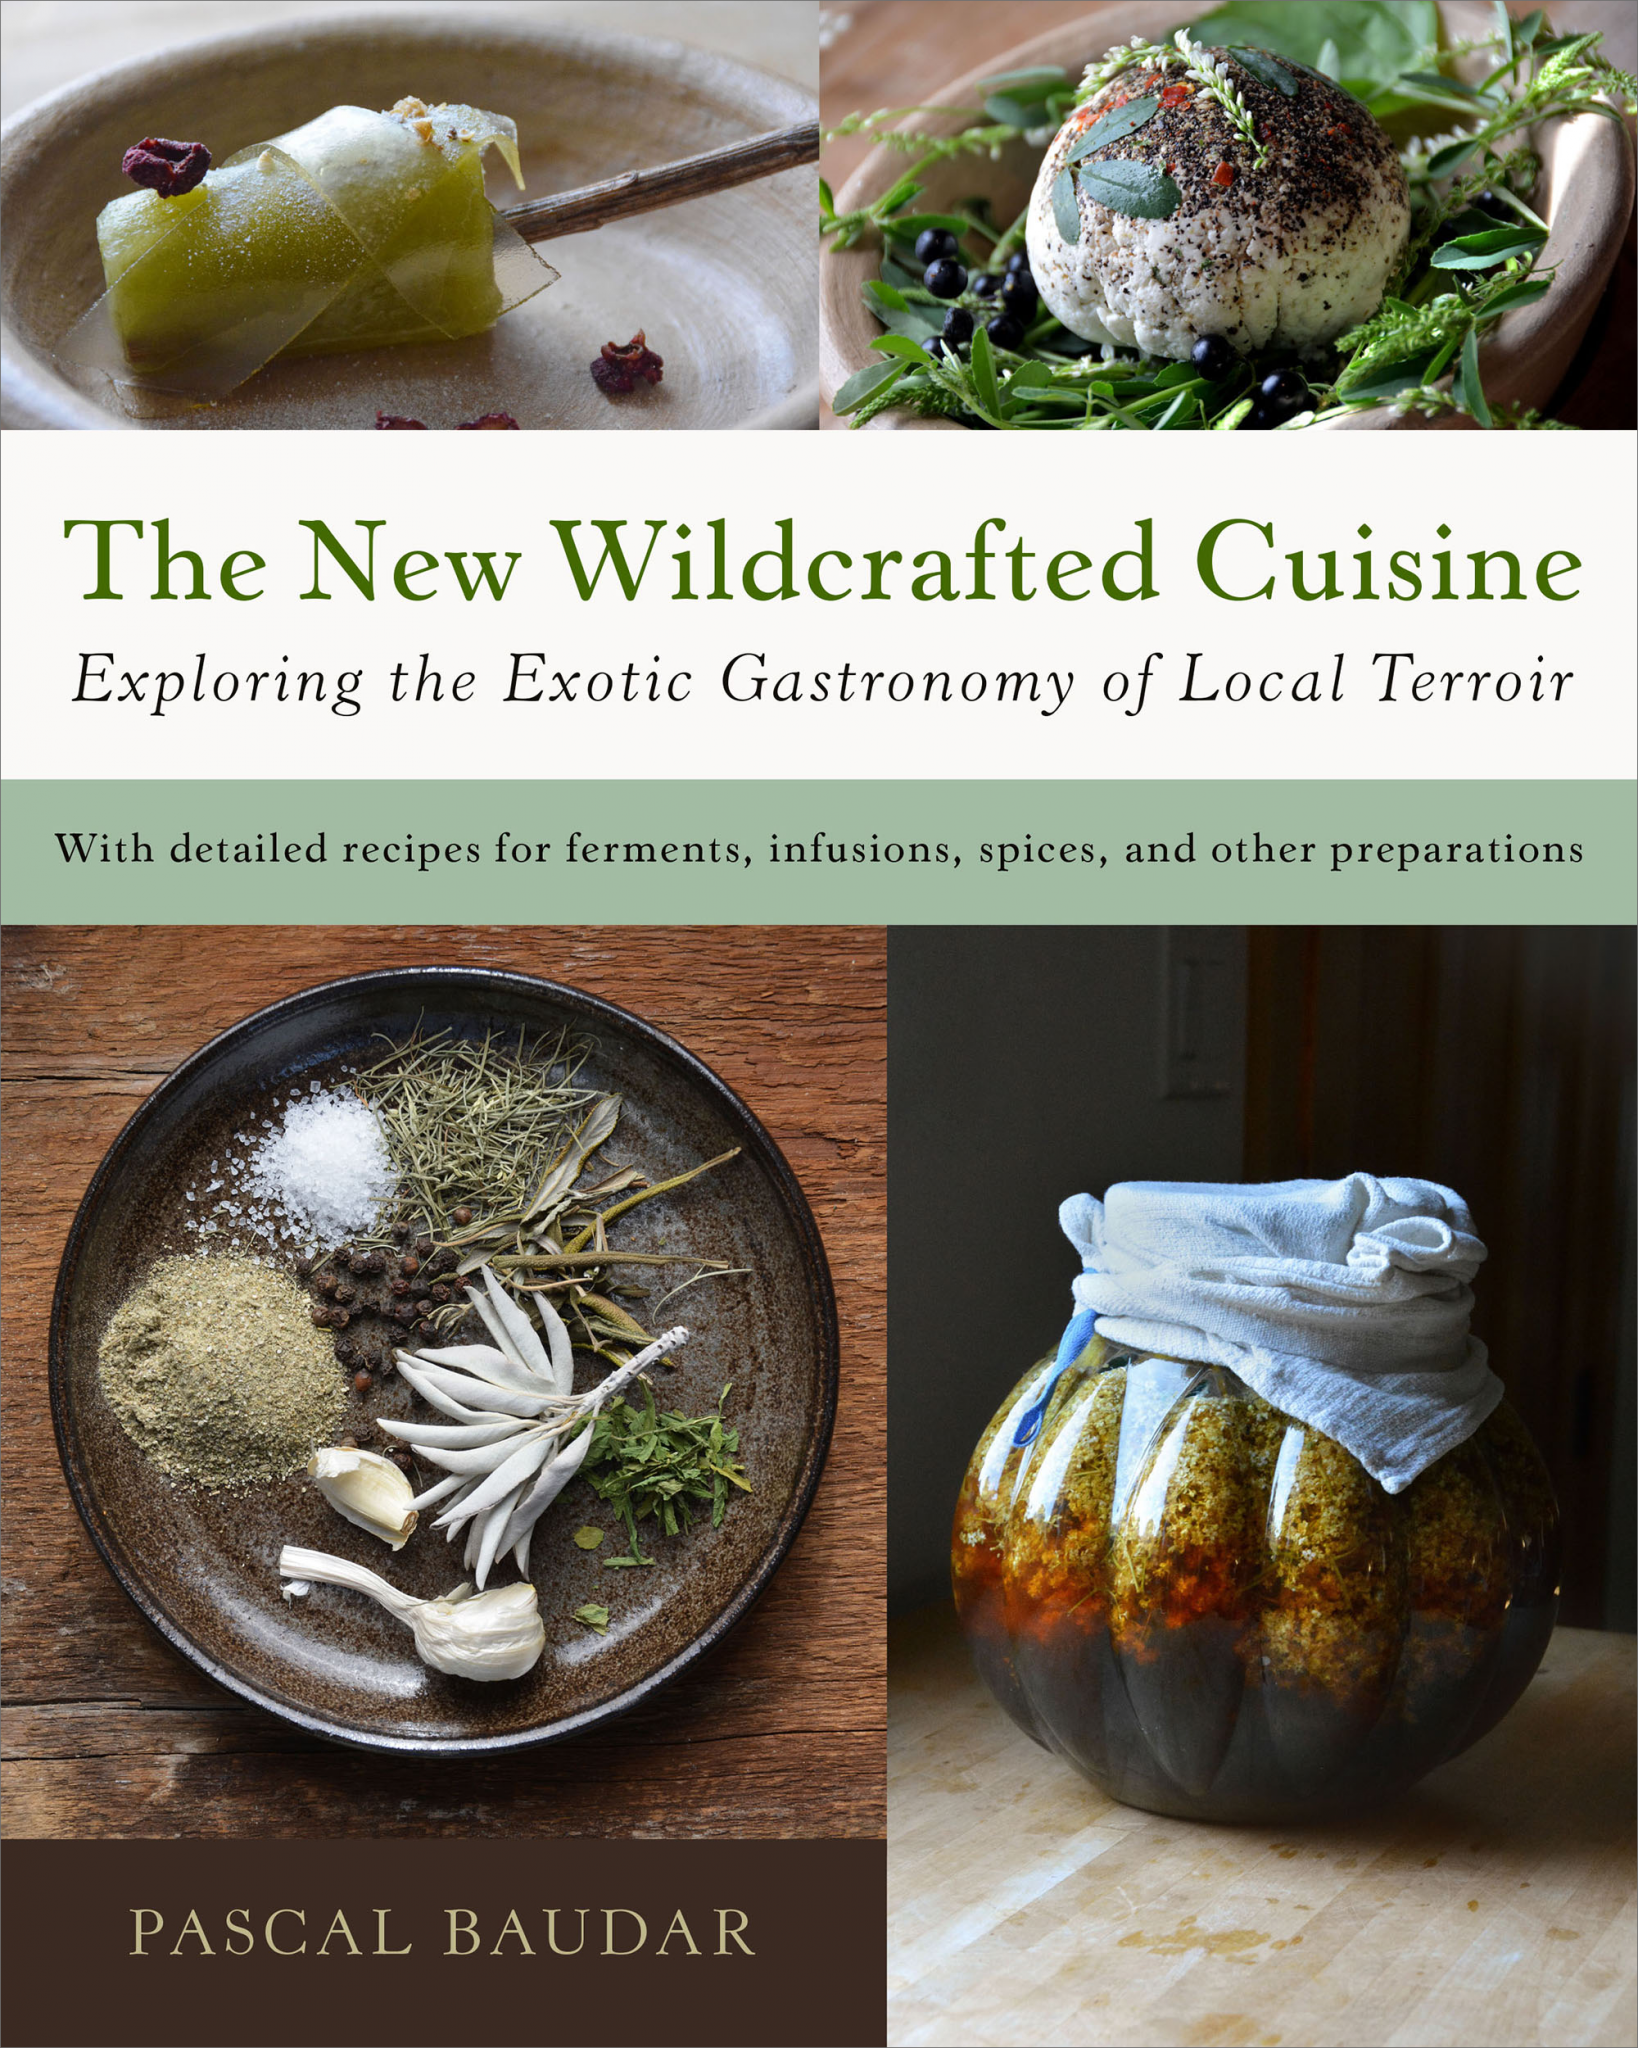 Pascal Baudard - NewWildcraftedCuisine Cover